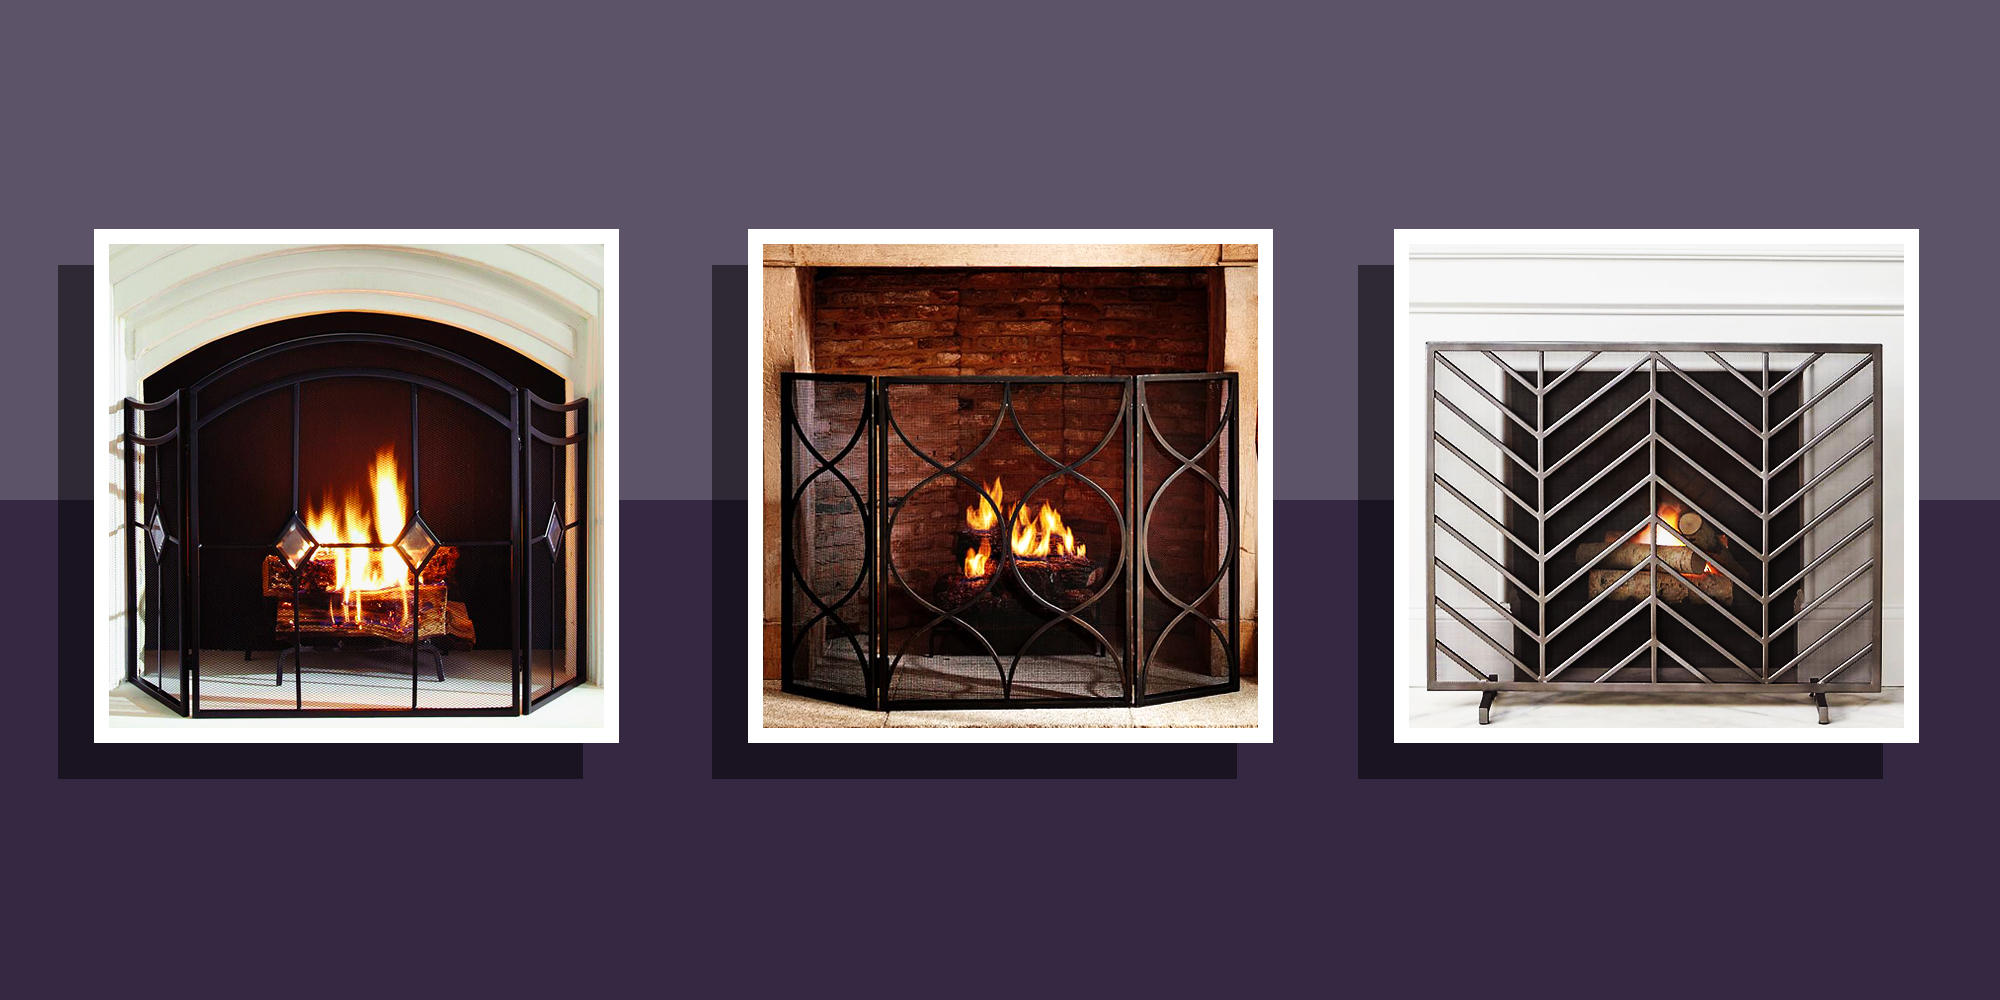 10 Best Fireplace Screens For Winter 2018 Decorative: decorative fireplace covers